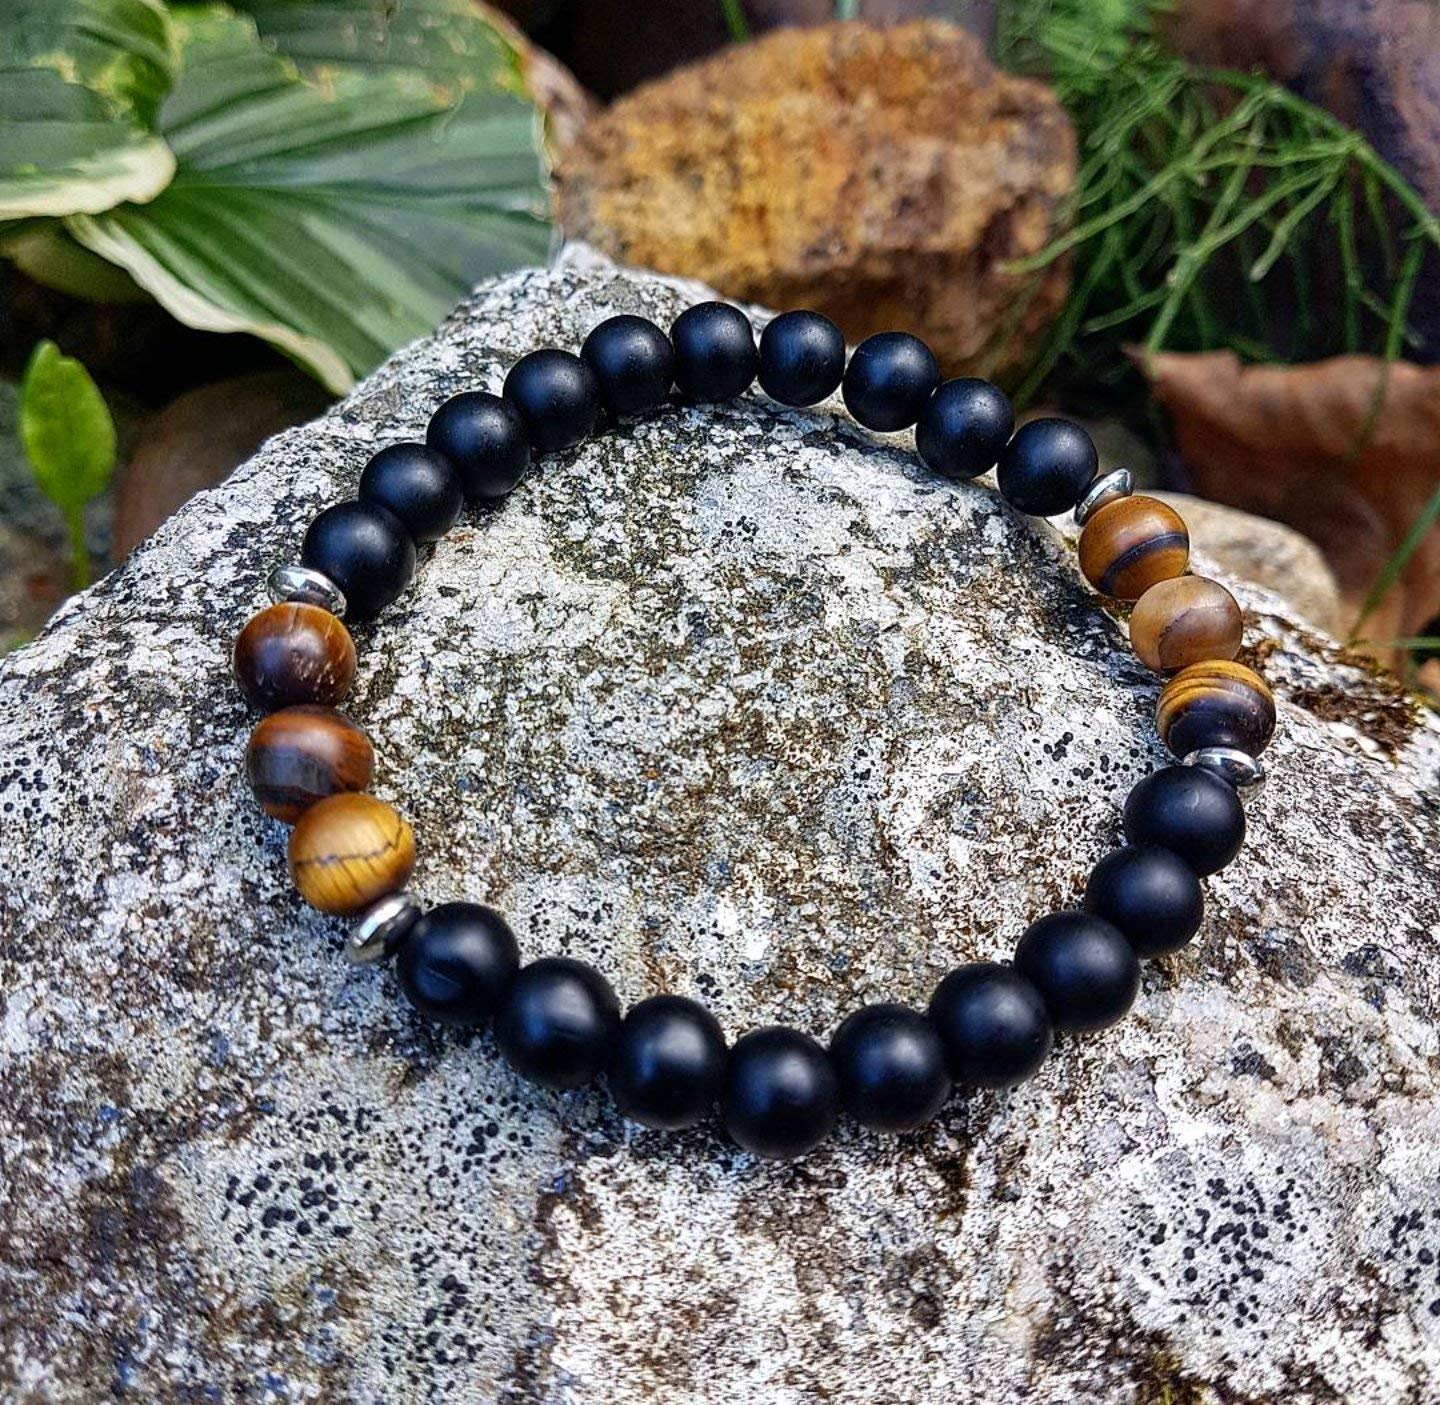 Strength of a tiger - Handmade natural semi-precious healing gemstones crystals stretch bracelet made of black mat onyx and mat tiger's eye 8mm beads men women unisex